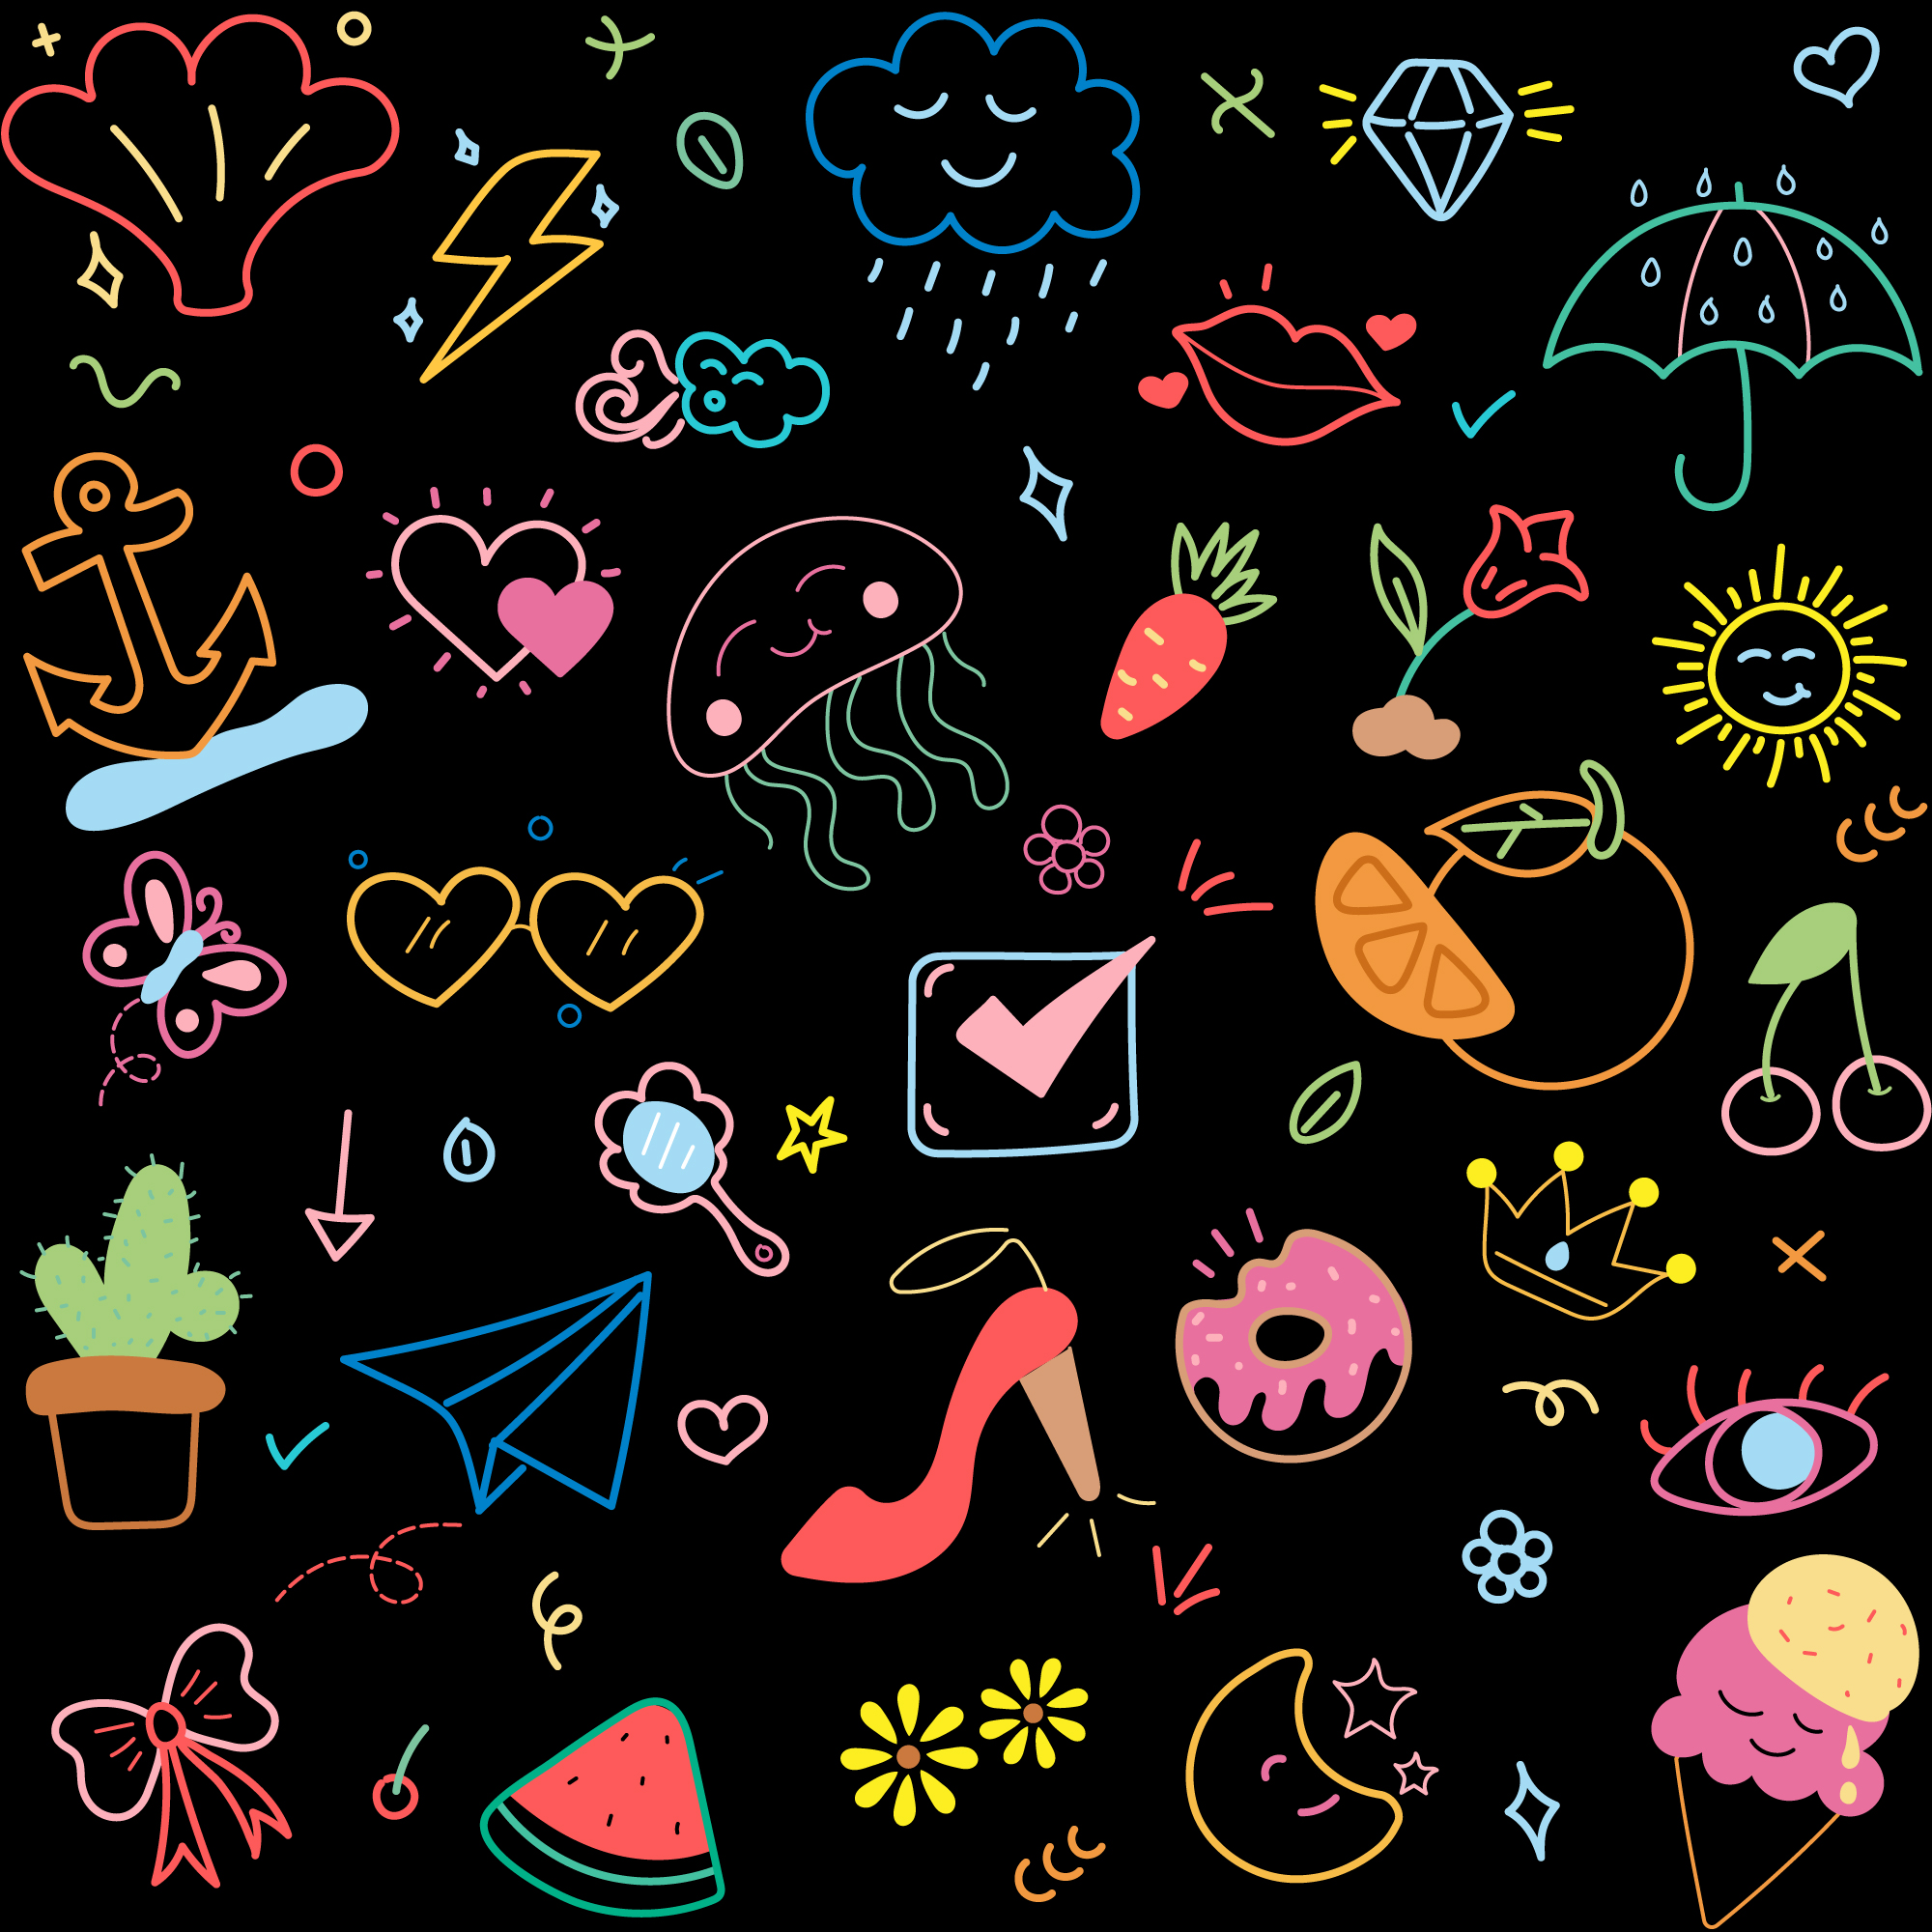 Colorful Doodles Vector